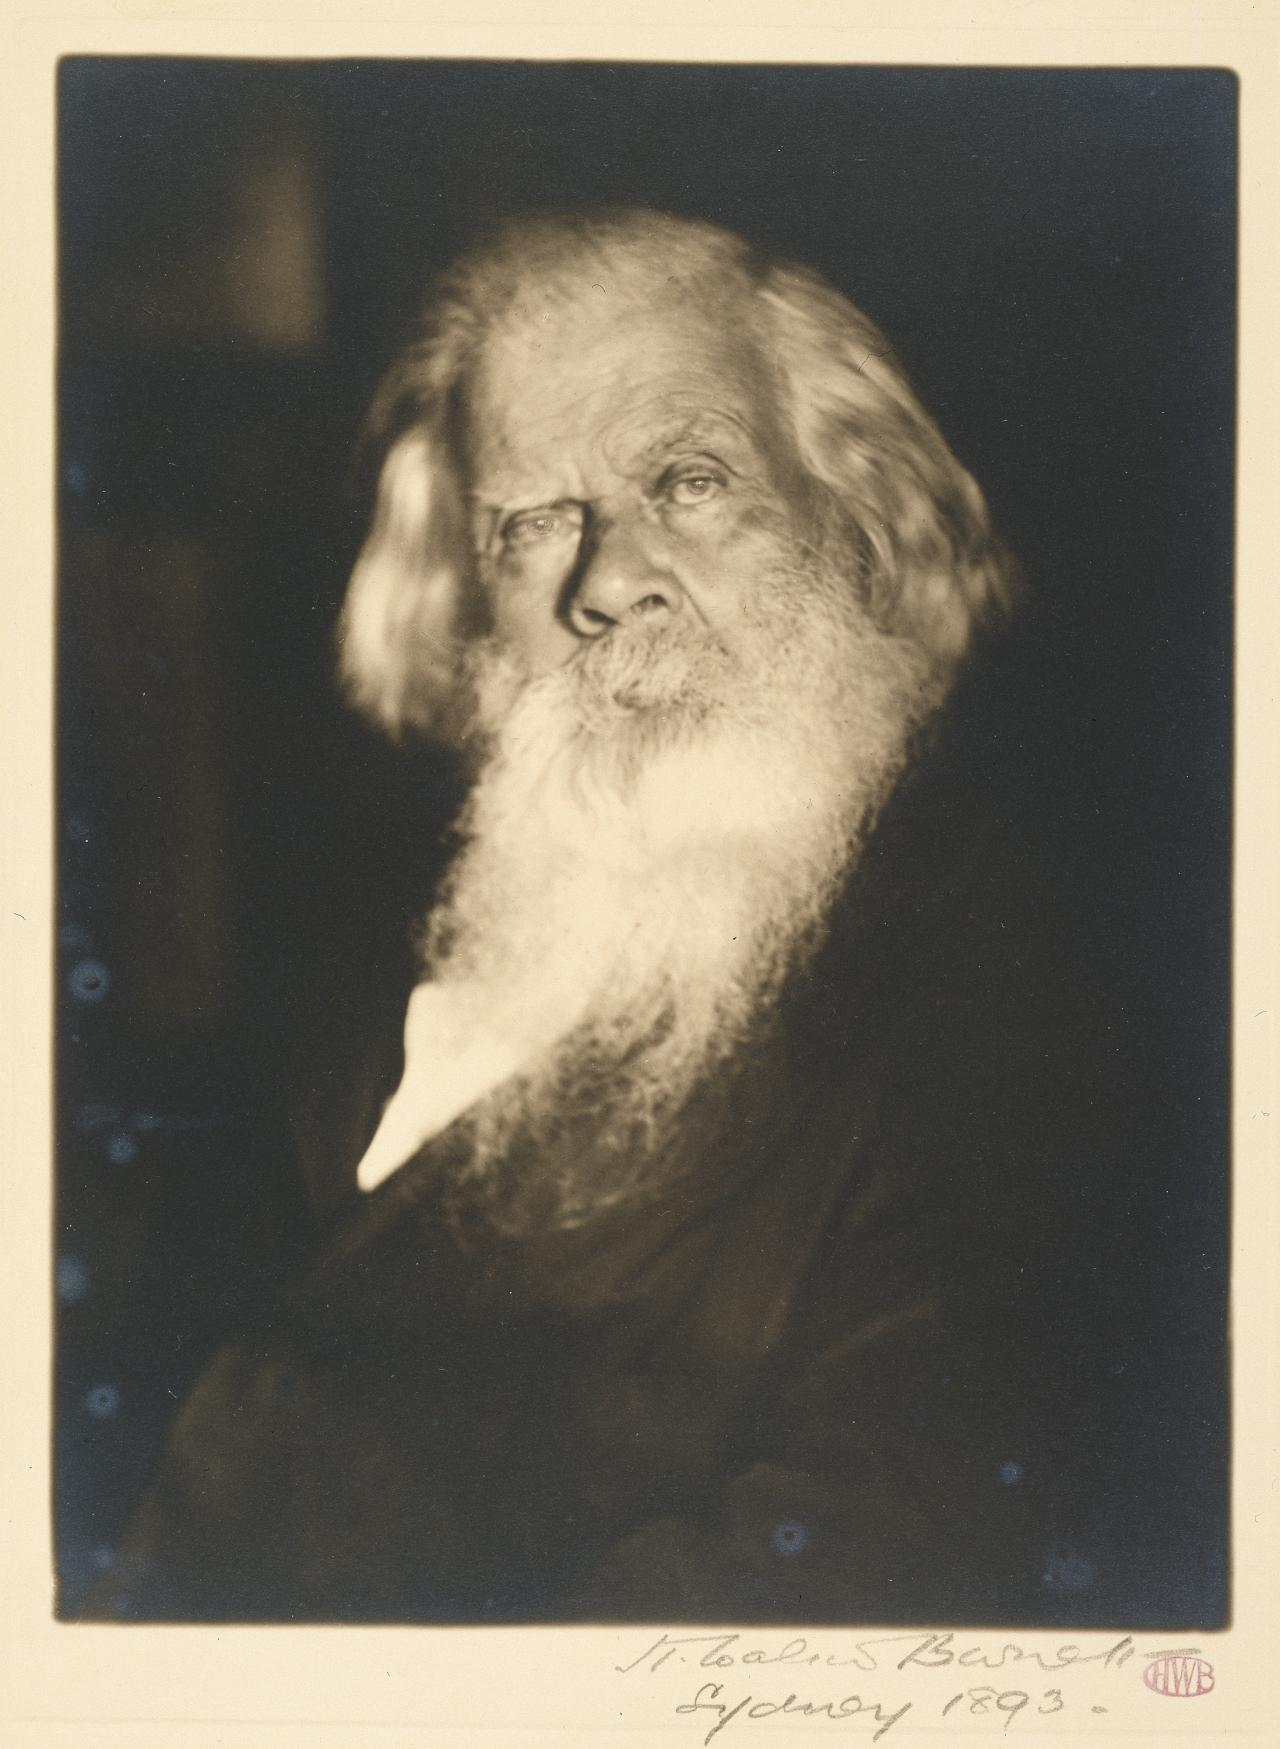 Sir Henry Parkes, 12 years Prime Minister of New South Wales